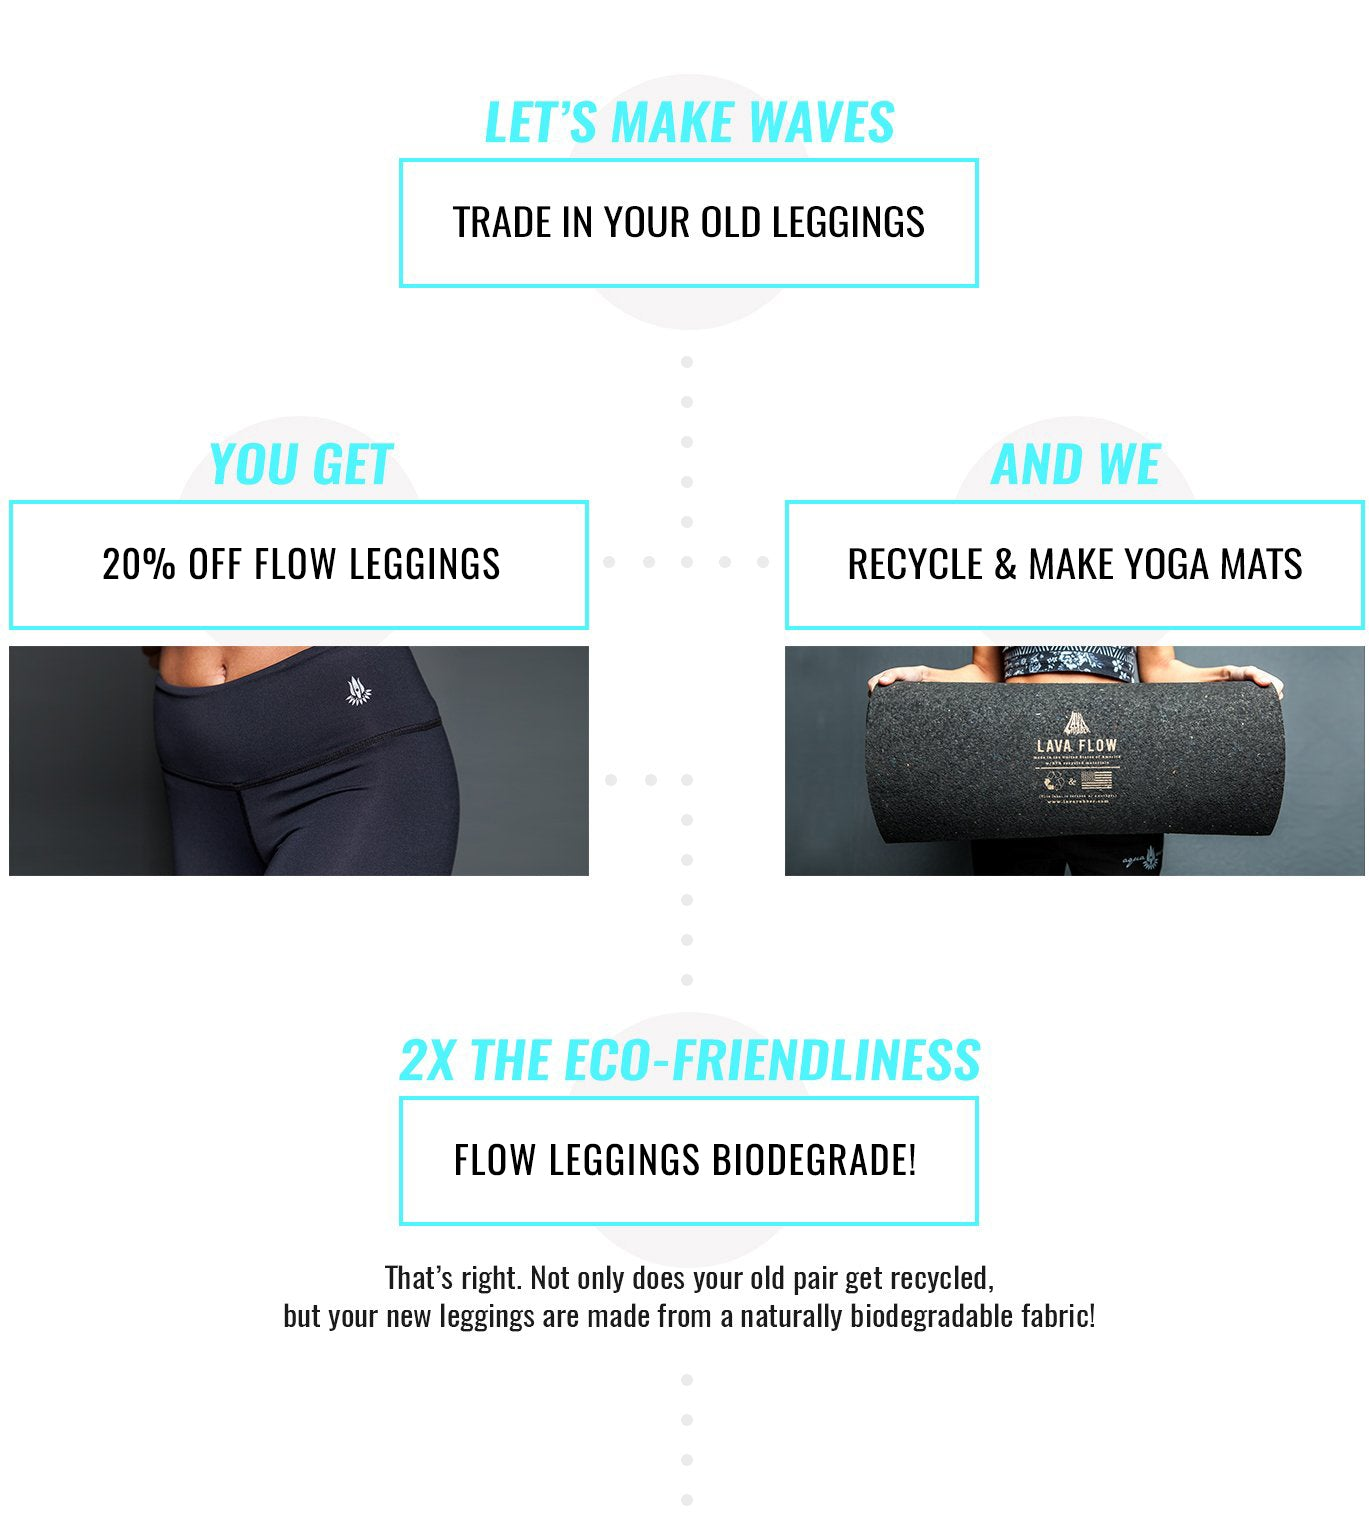 Aqua Vida Legging Trade Up Program